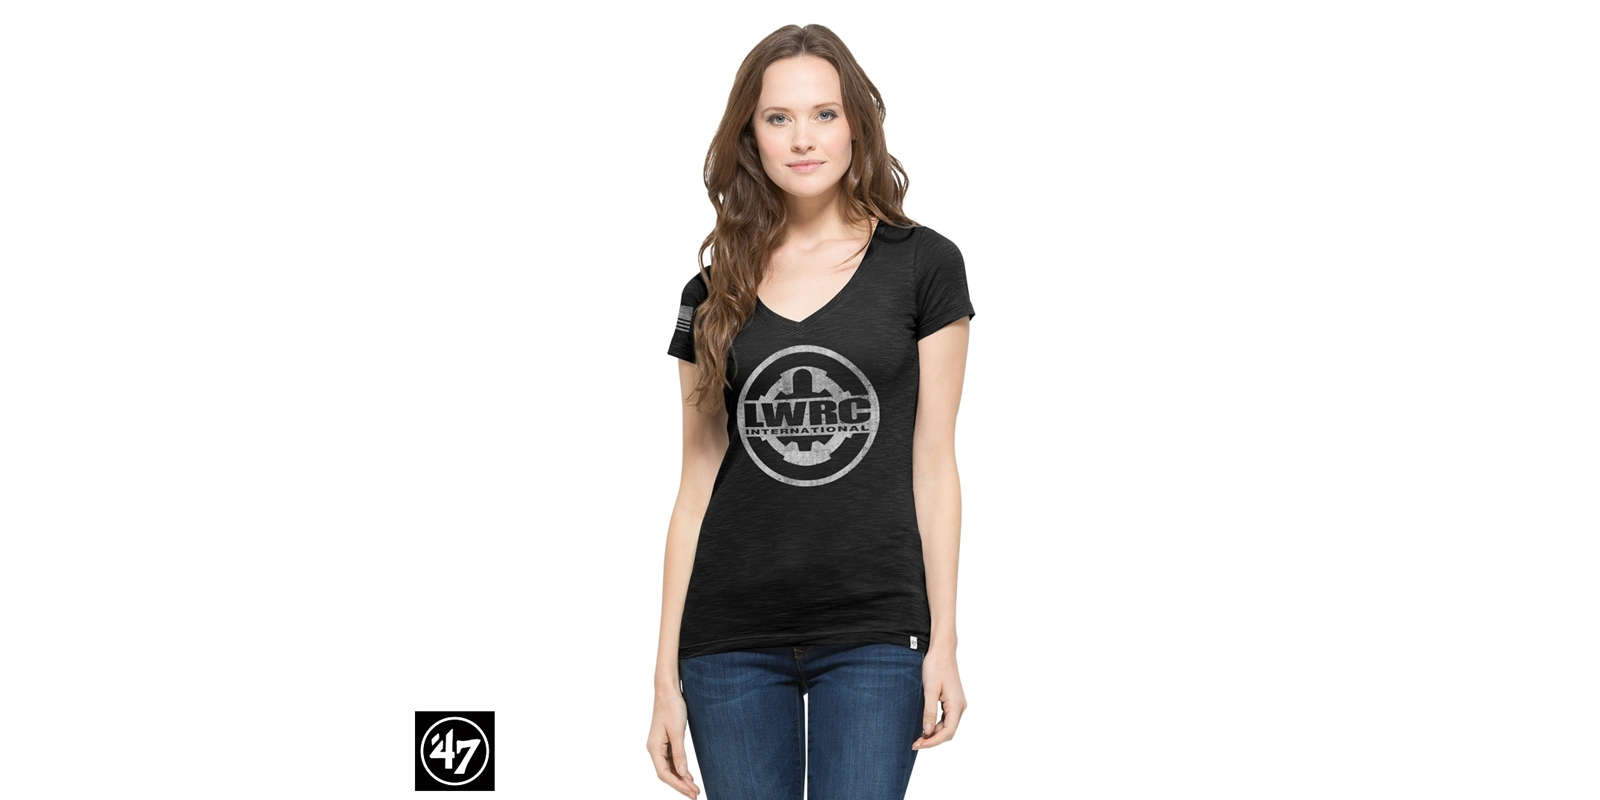 LWRCI Women's Vintage Tee Two Peat Scrum